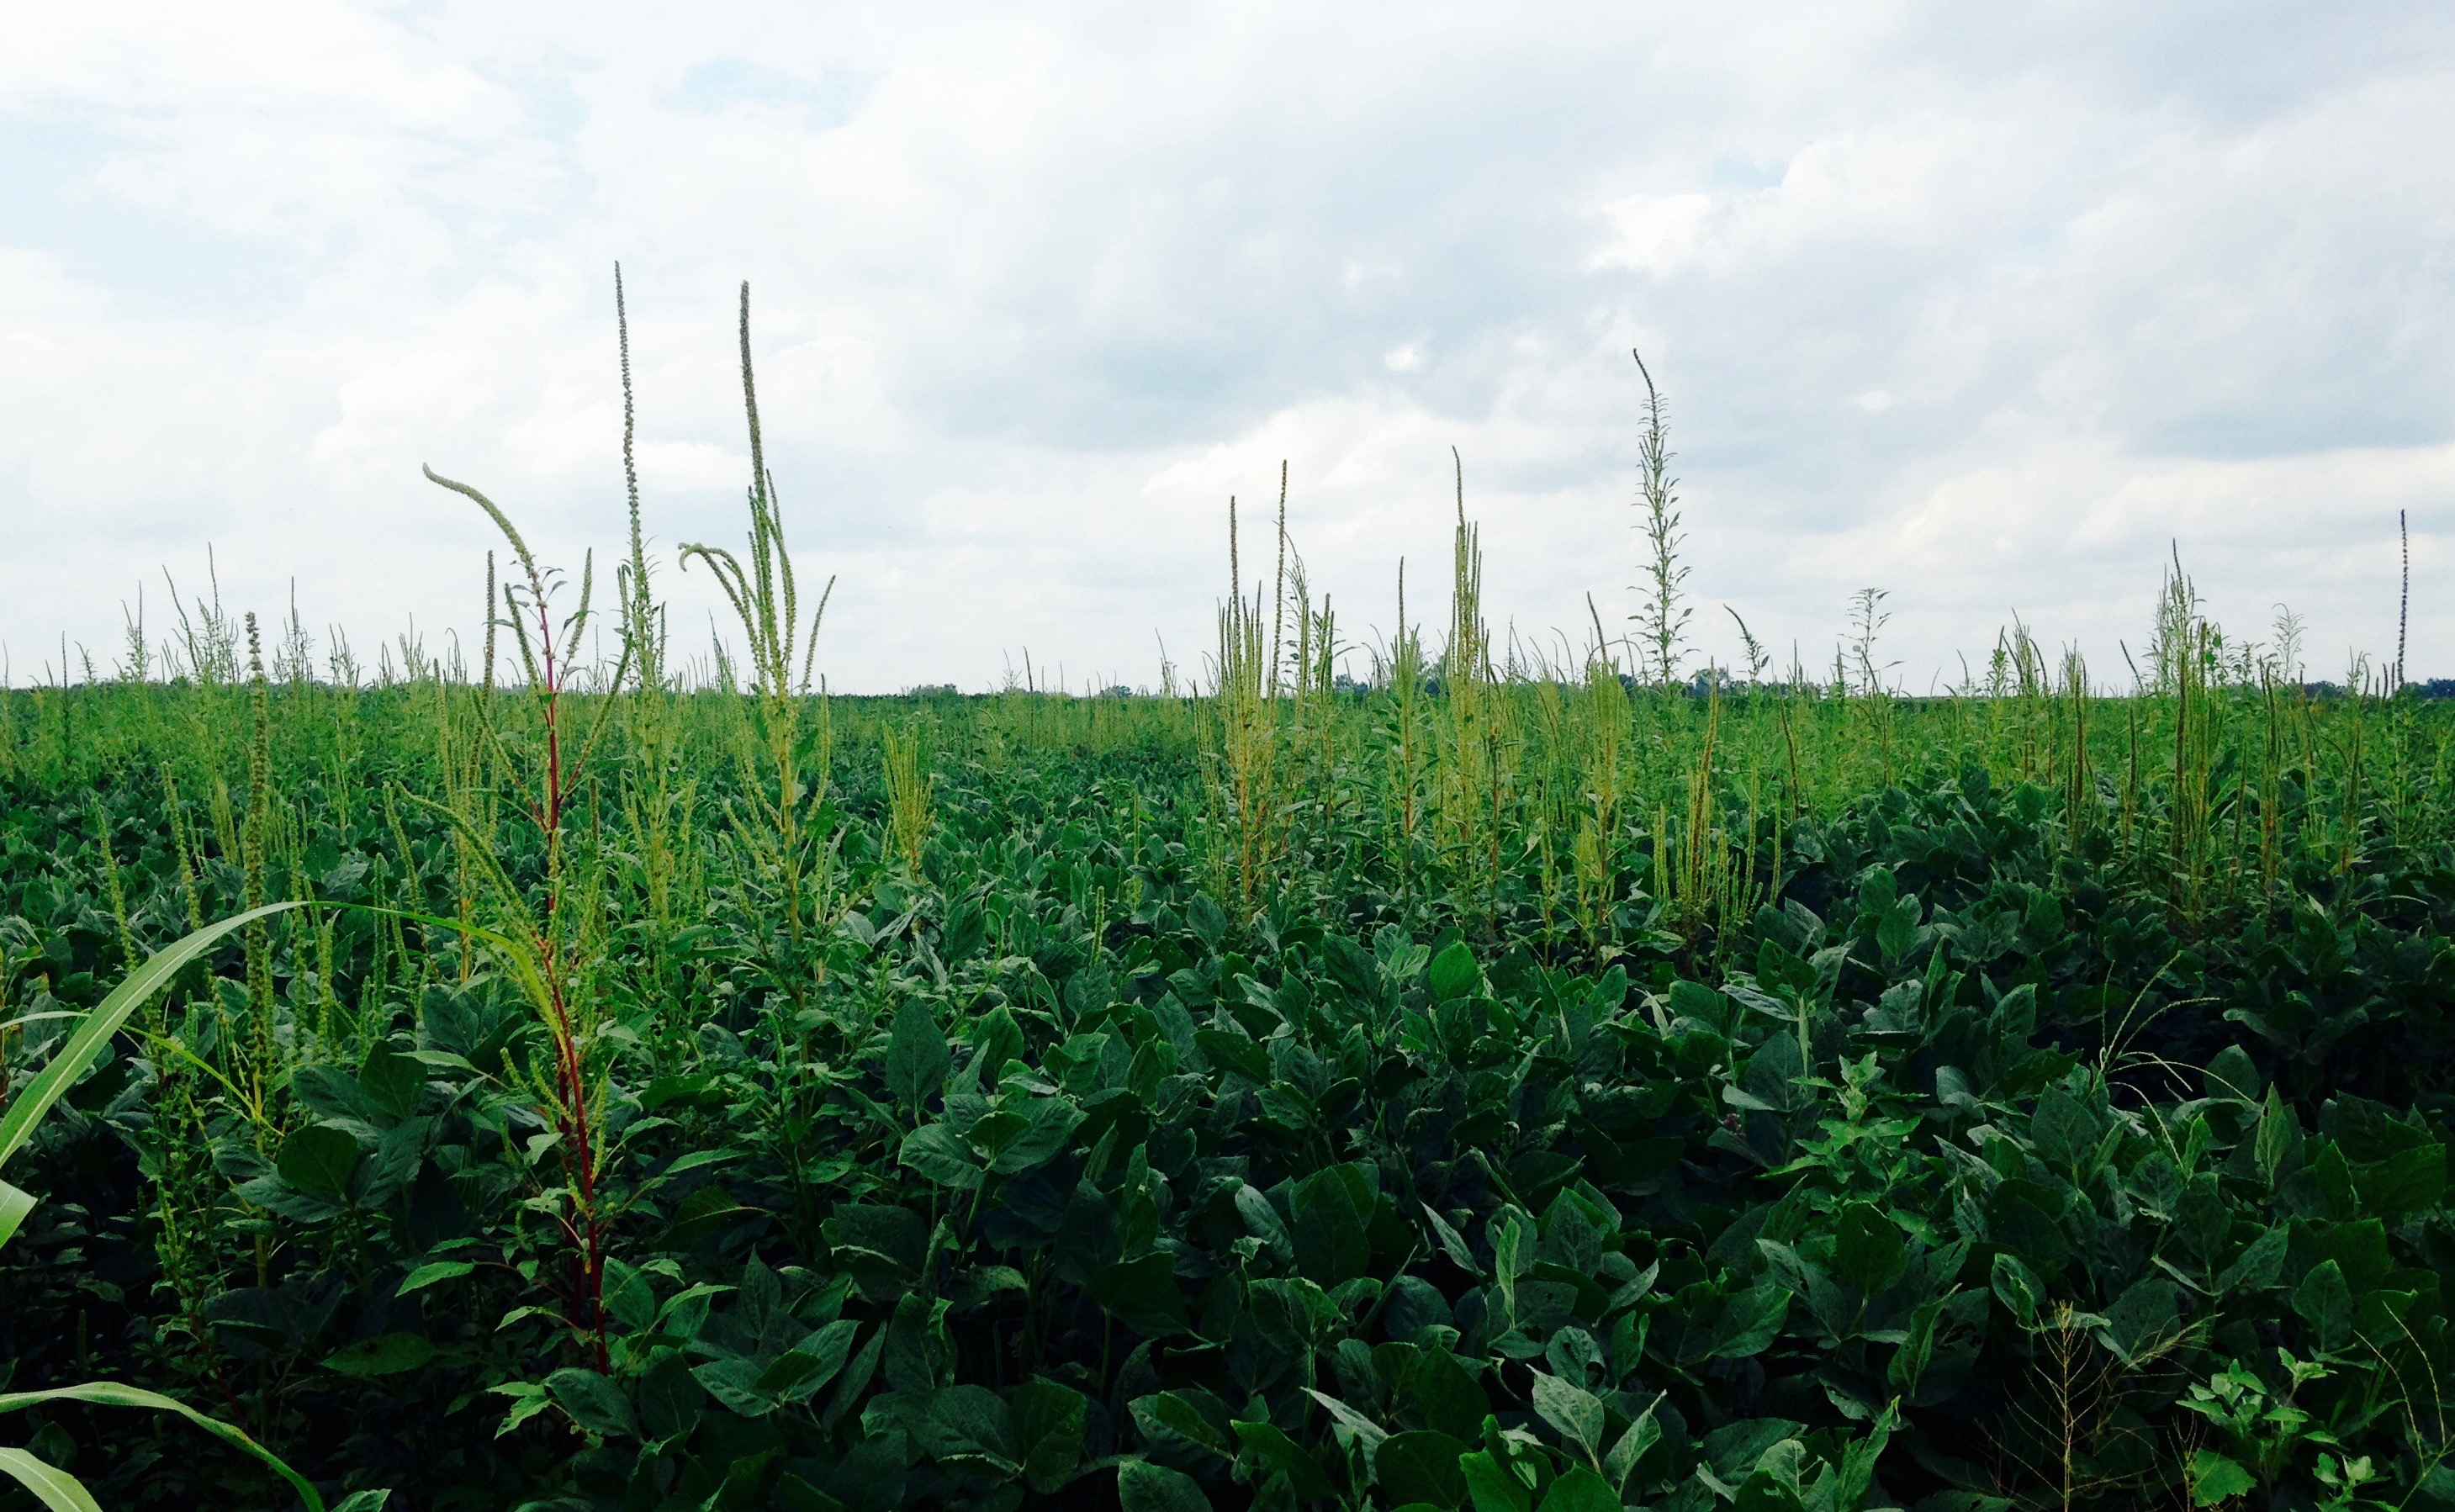 Weeds, Herbicides, and Bodies: Emerging Entanglements in